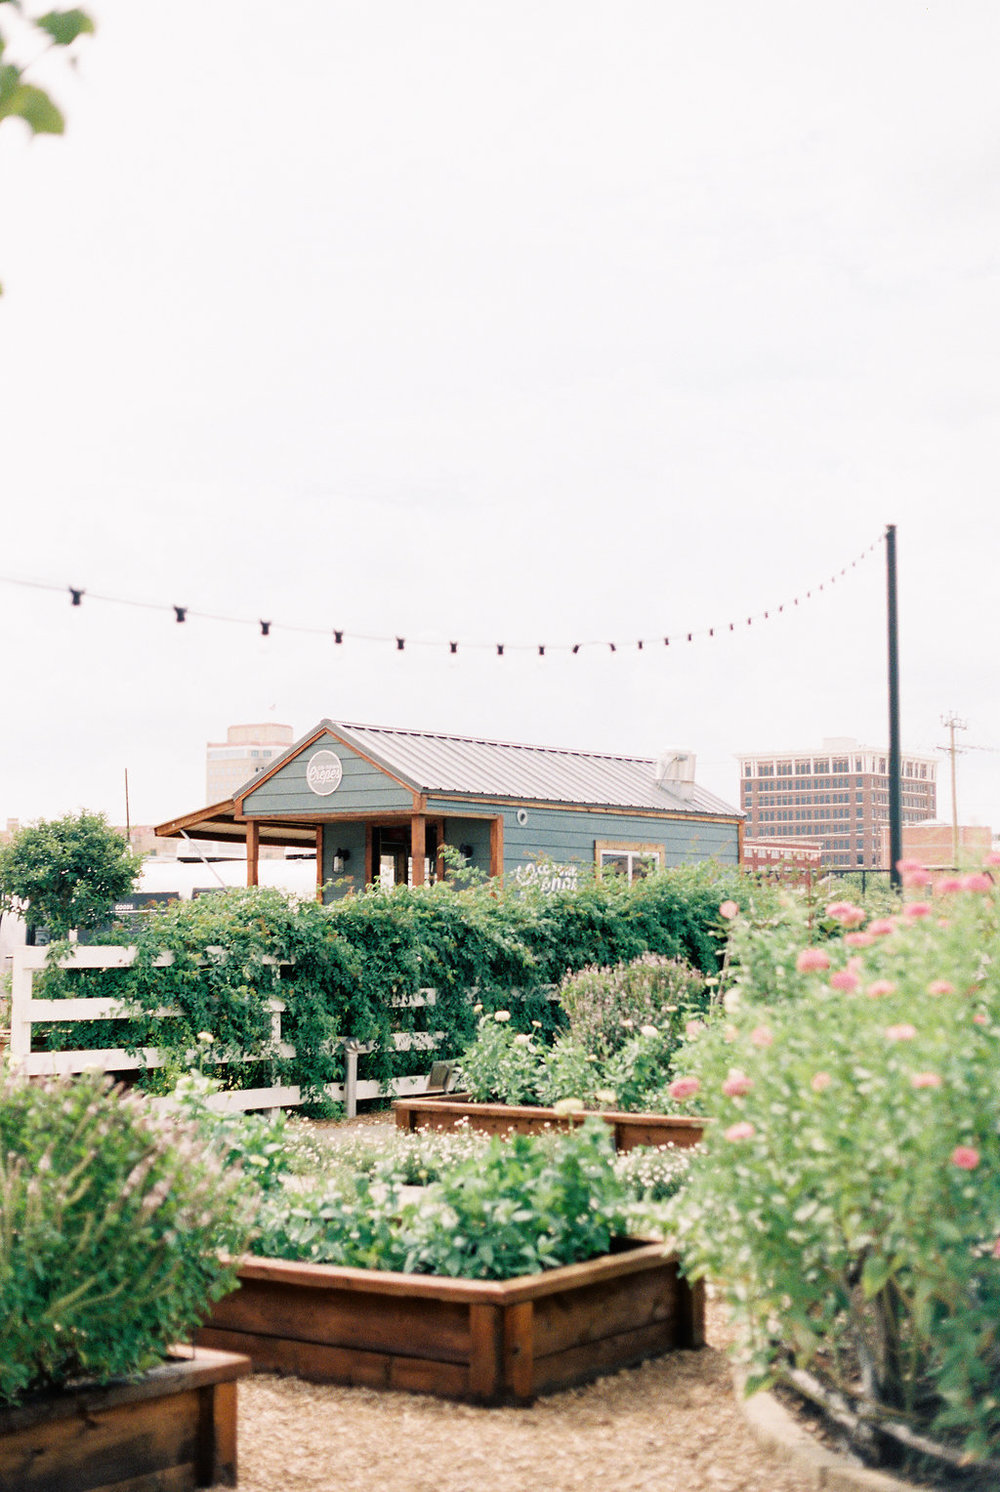 The 7 Things You Must Do at Magnolia Market on Cottage HIll | cottagehill.co21.jpg